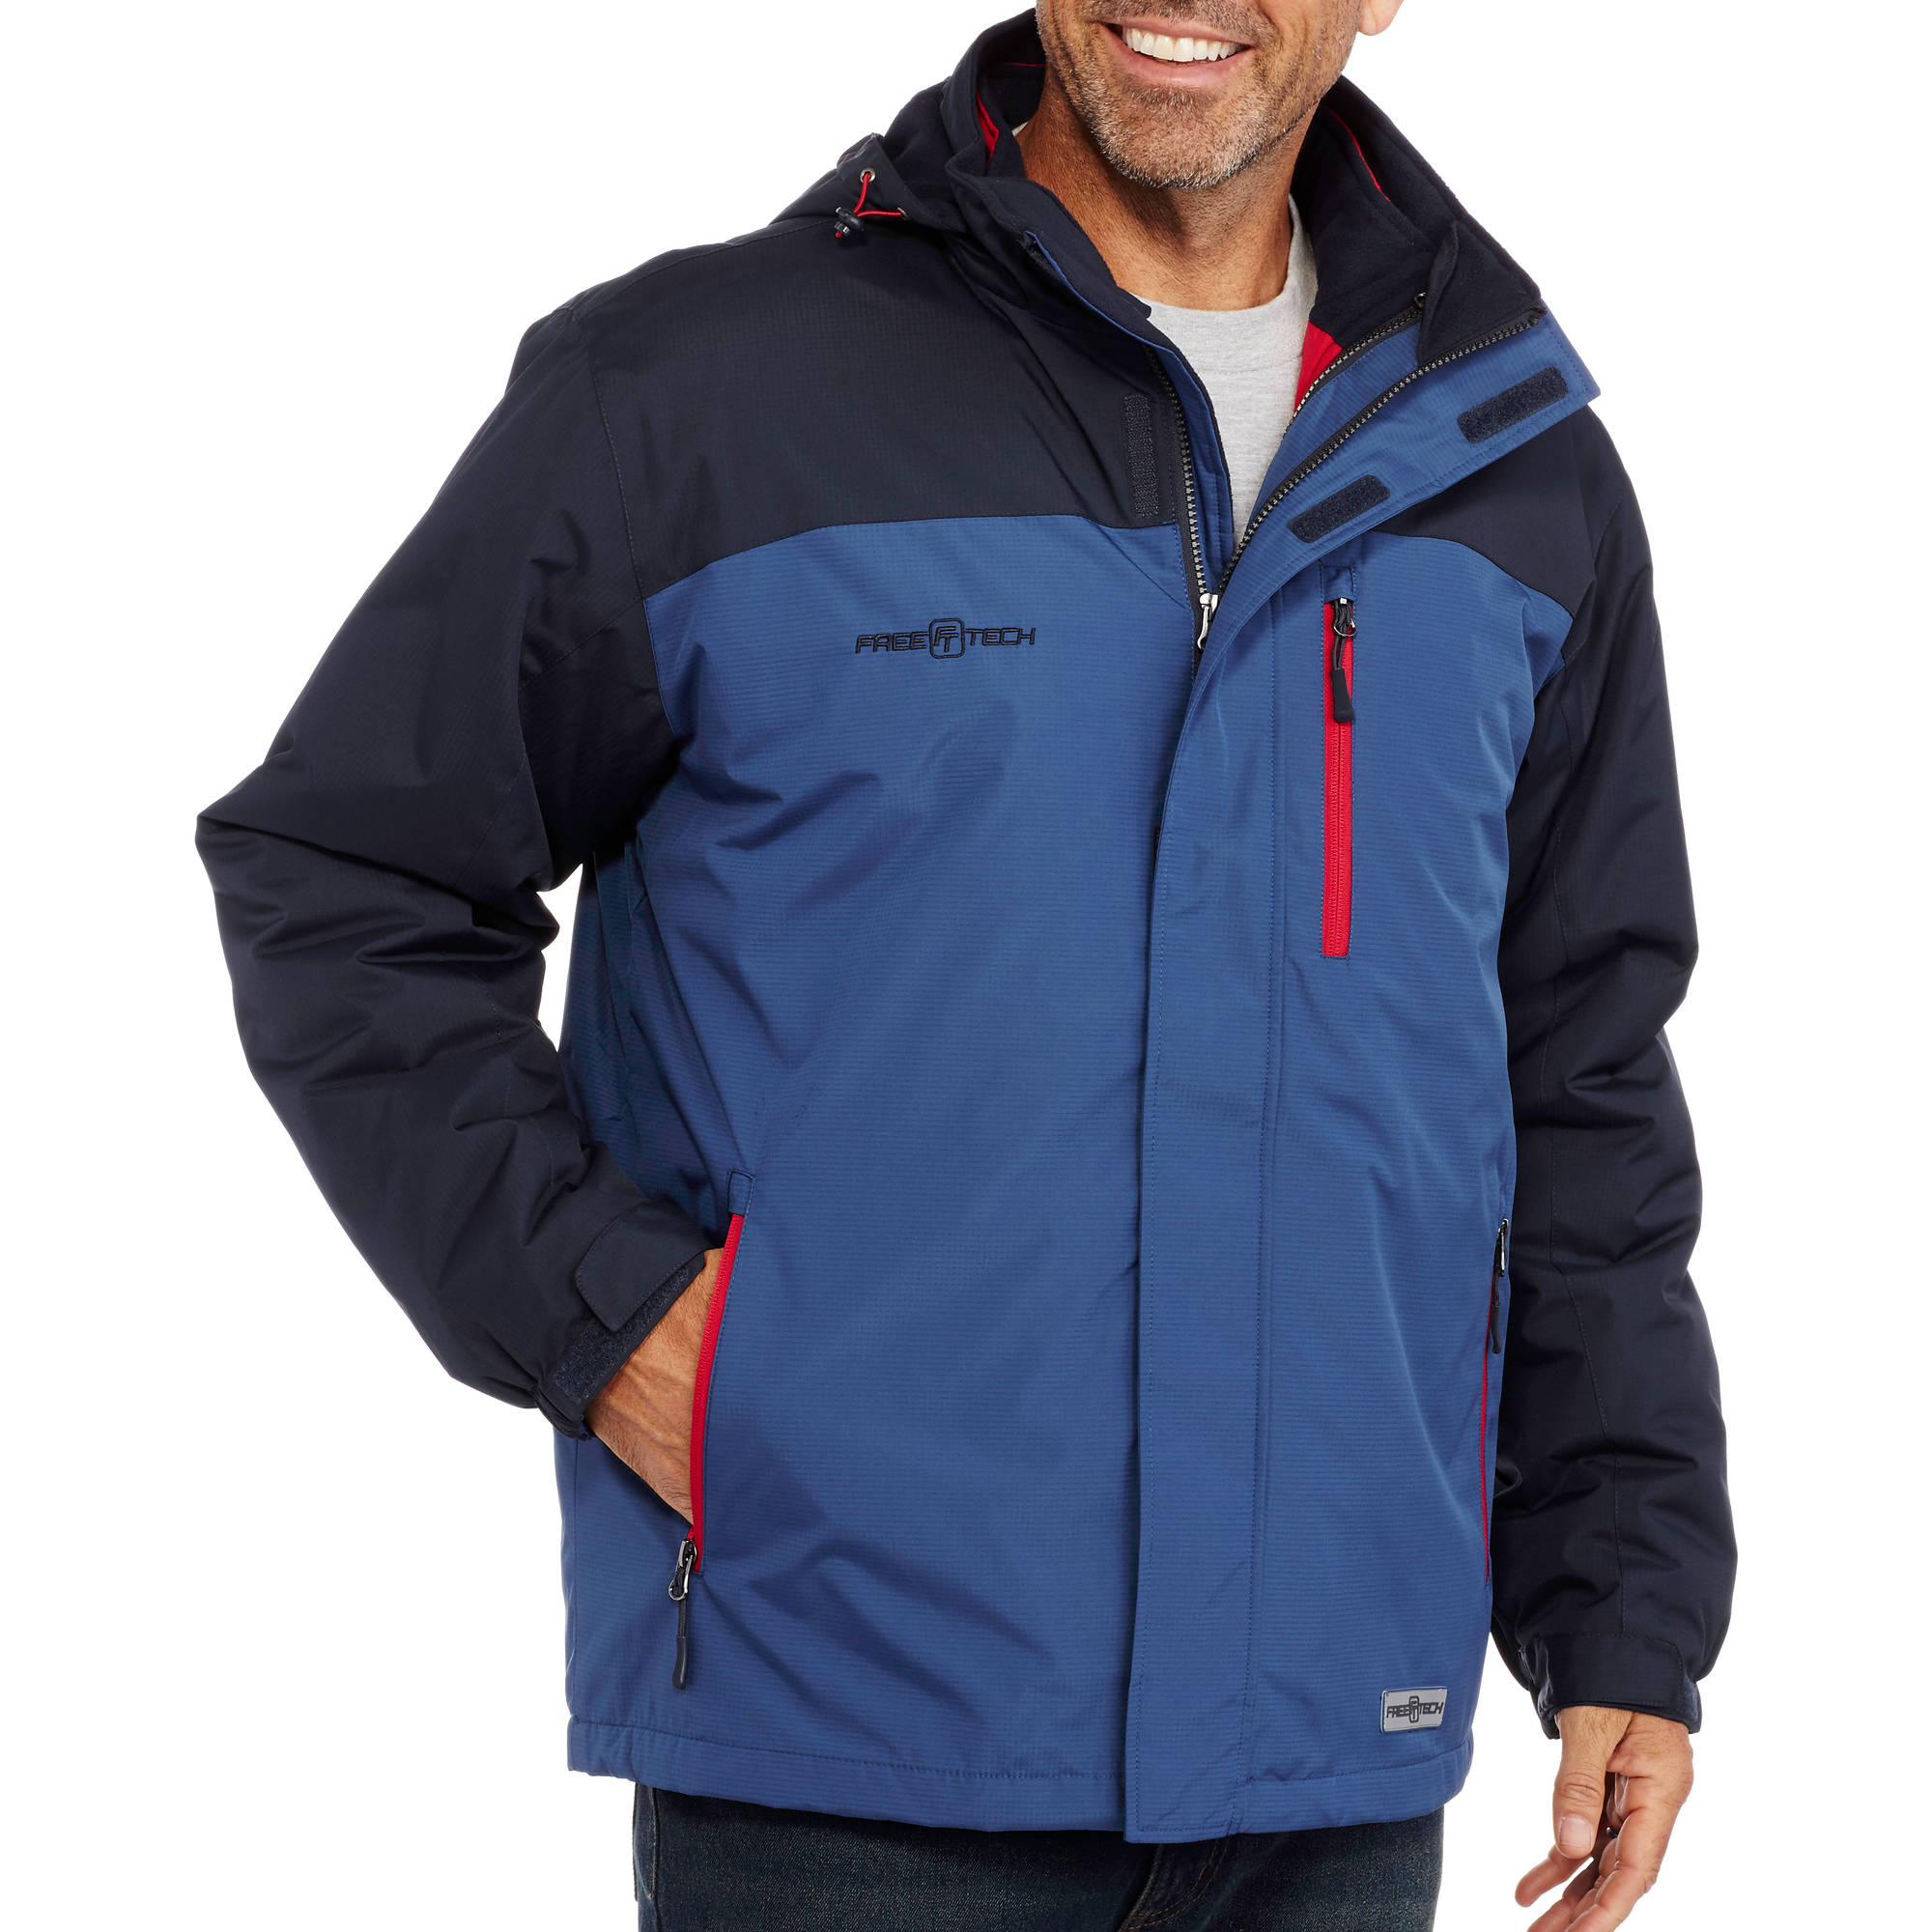 Free Tech Systems Men's Jacket